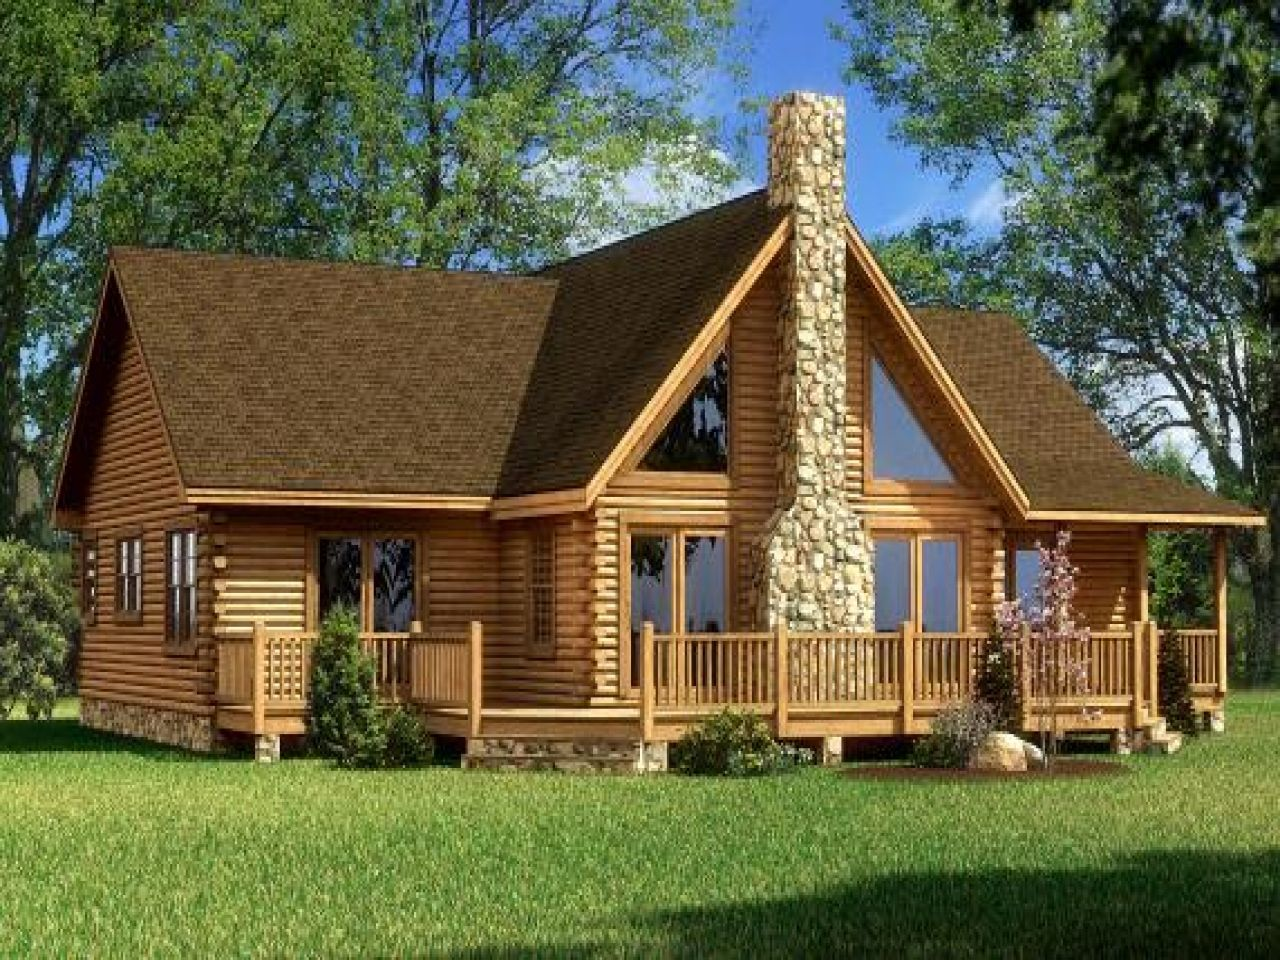 High Quality Log Cabin Flooring Ideas Homes Floor Plans Prices Luxury Cabins